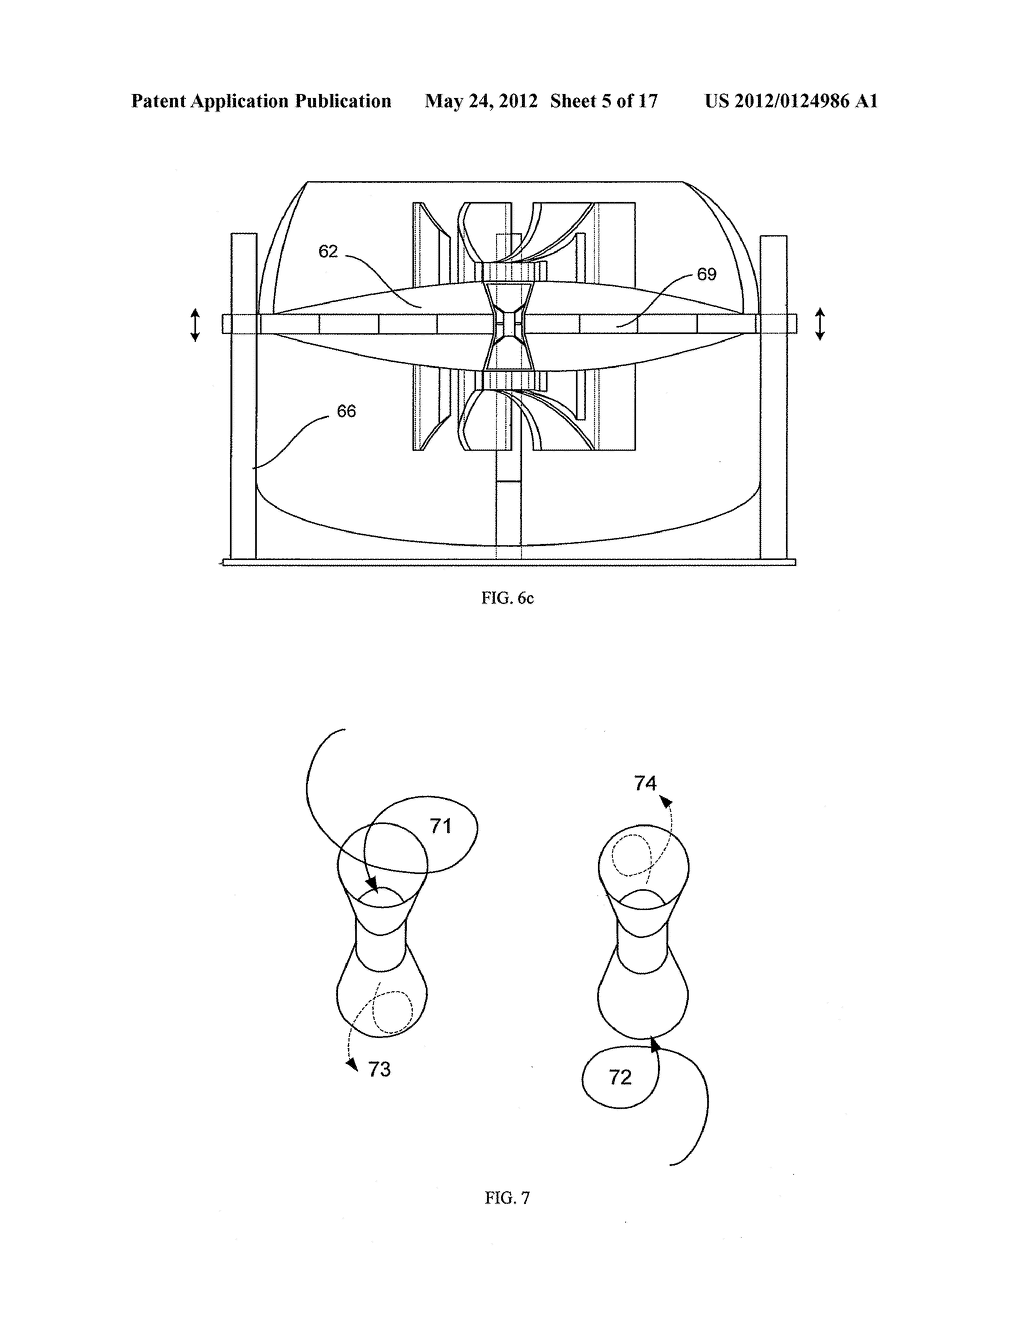 Bidirectional Axial Flow Turbine With Self Pivoting Blades For Use Jet Engine Diagram Of An Axialflow In Wave Energy Converter Schematic And Image 06